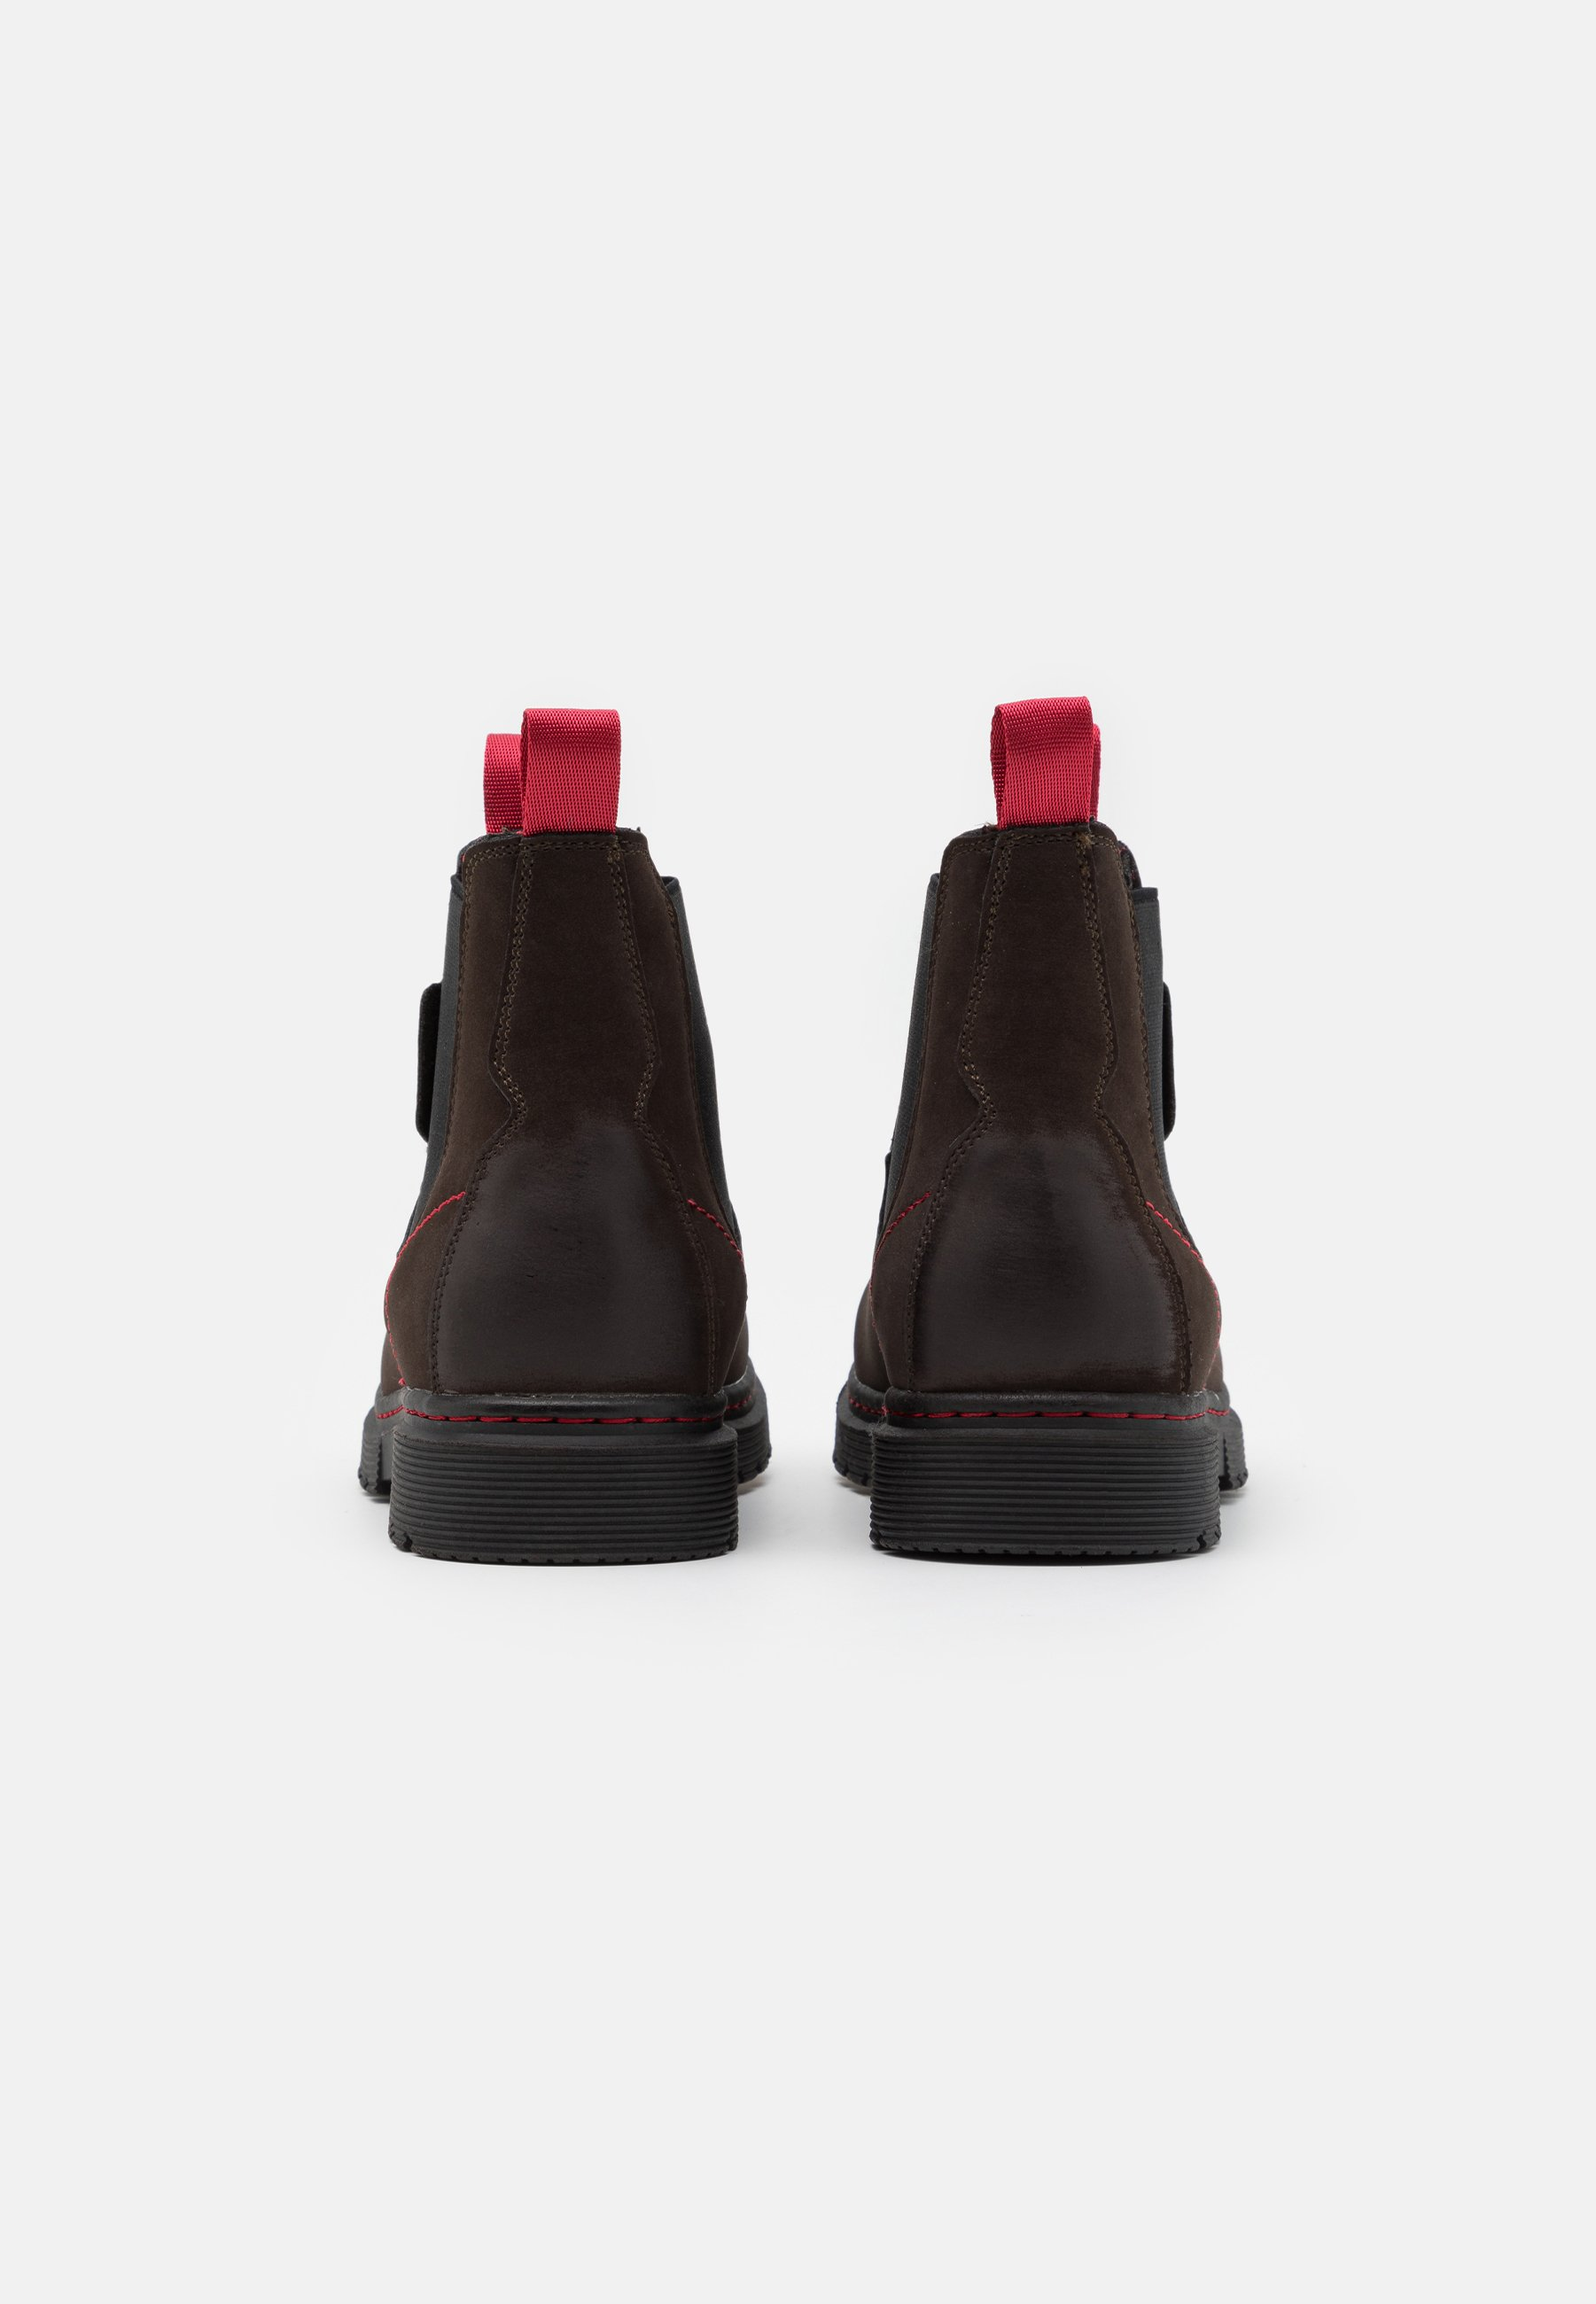 2013 Cheapest Levi's® OHIO - Classic ankle boots - brown | kids shoes 2020 ZPEKu